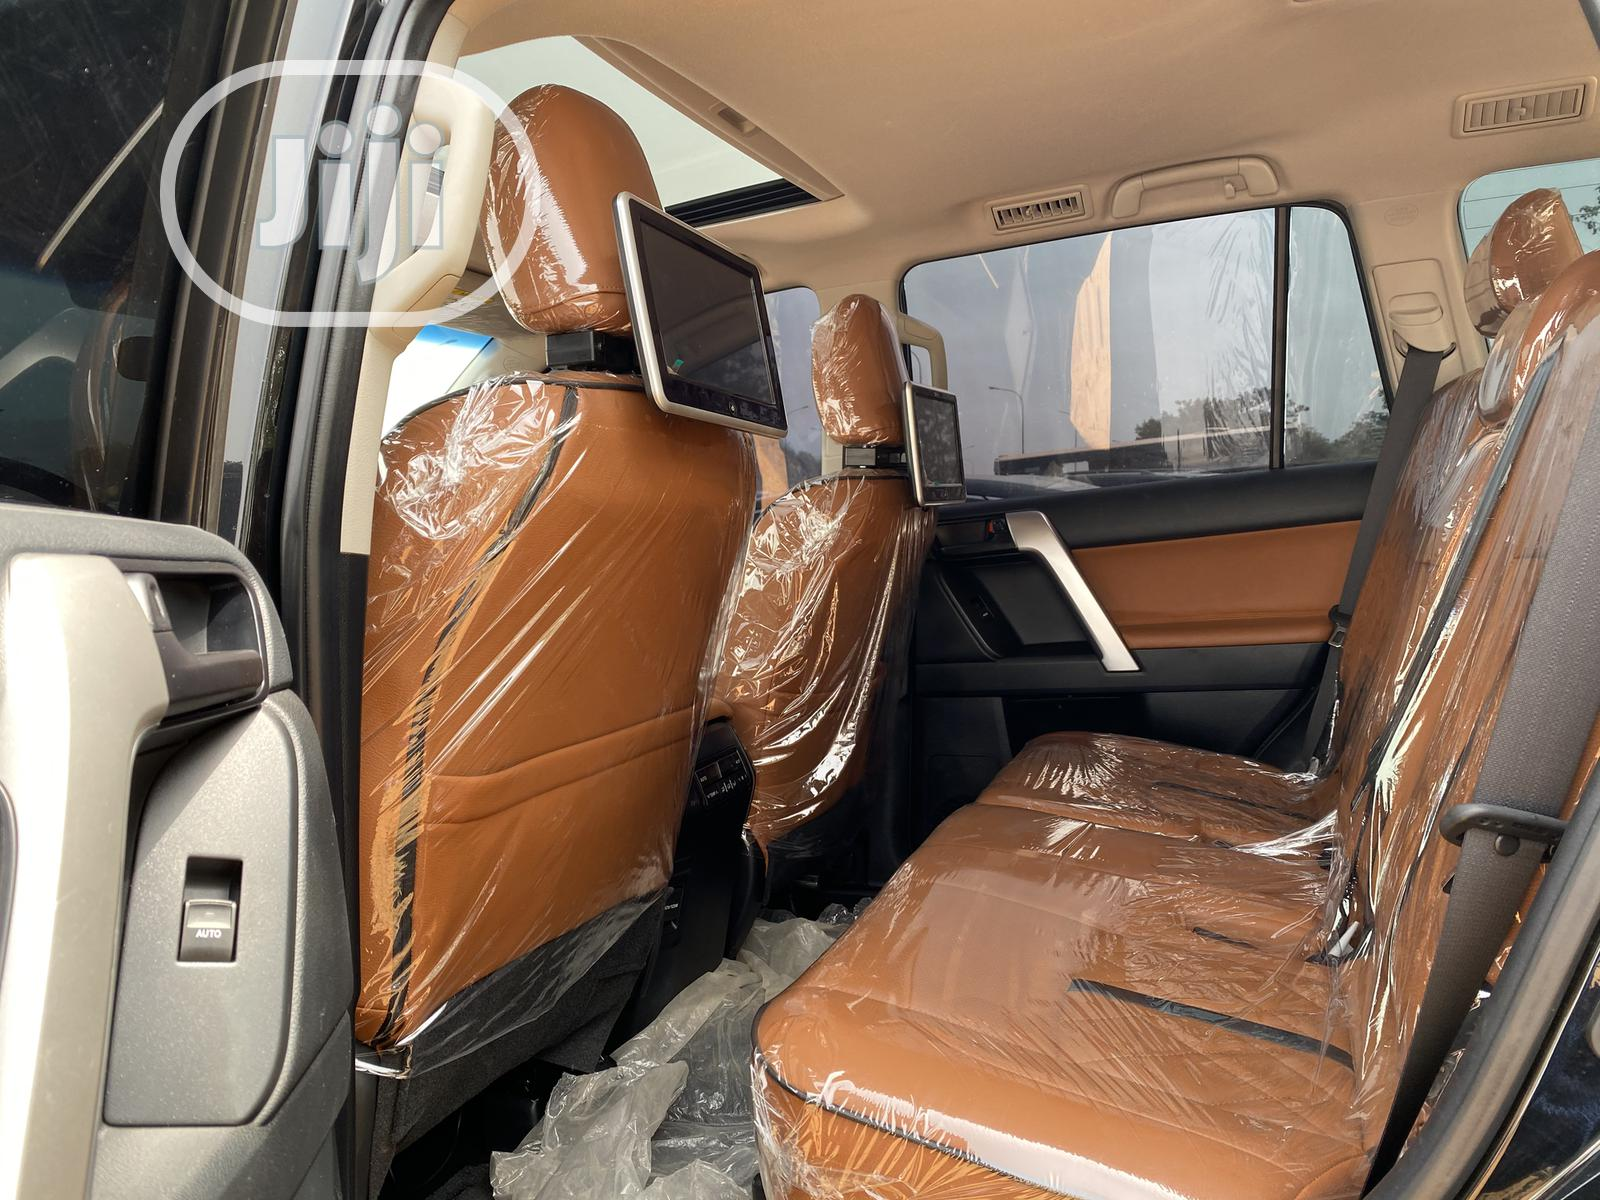 New Toyota Land Cruiser Prado 2019 Black | Cars for sale in Central Business Dis, Abuja (FCT) State, Nigeria